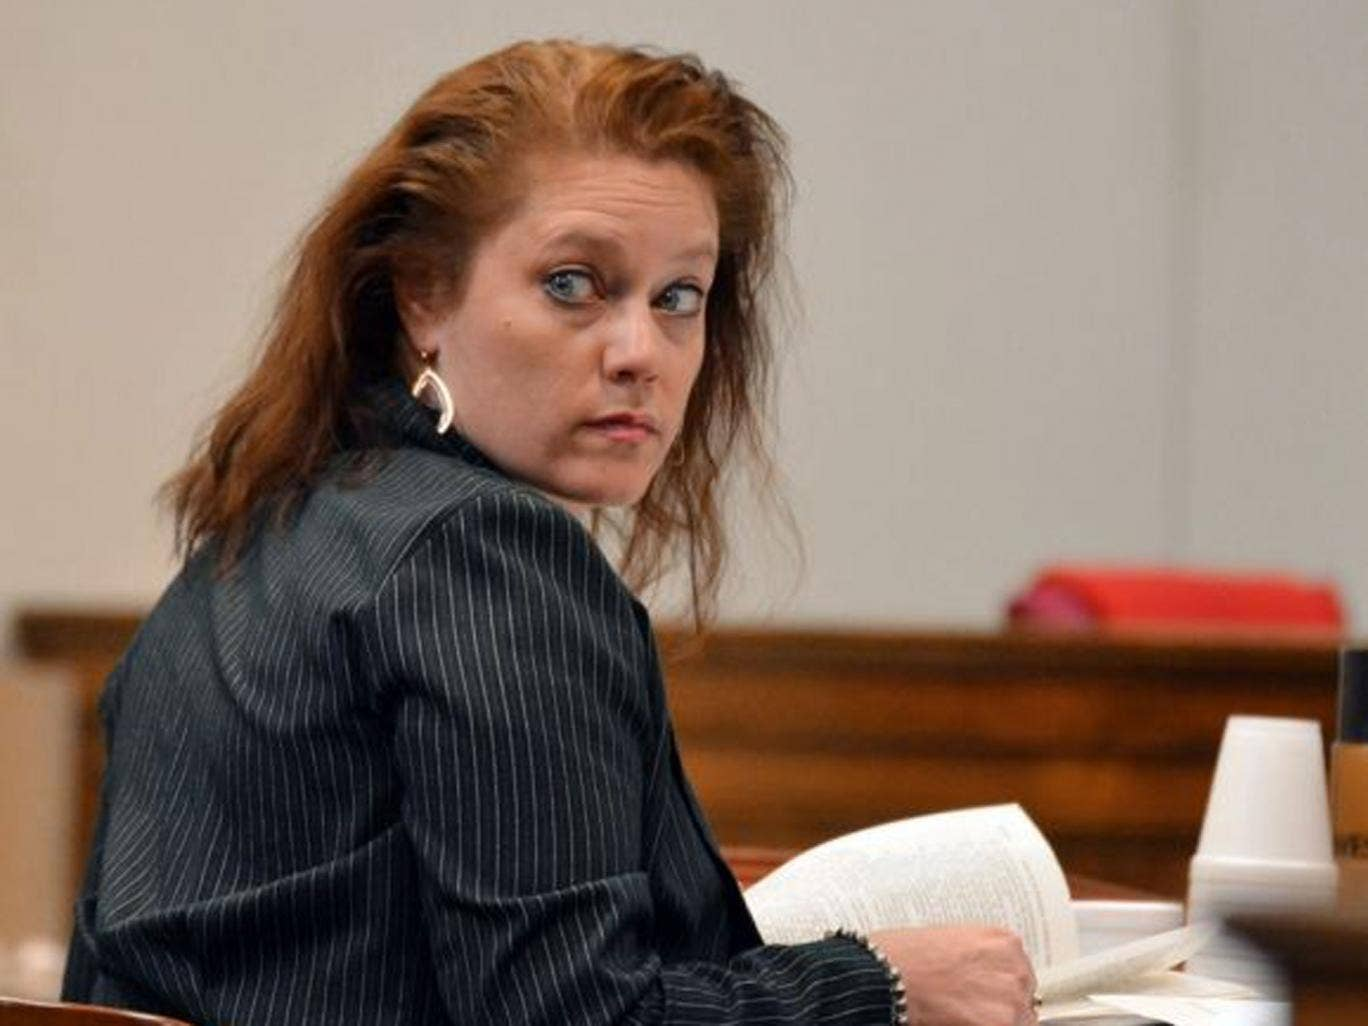 The former nurse must serve a minimum of 16 years in prison before she is eligible for parole